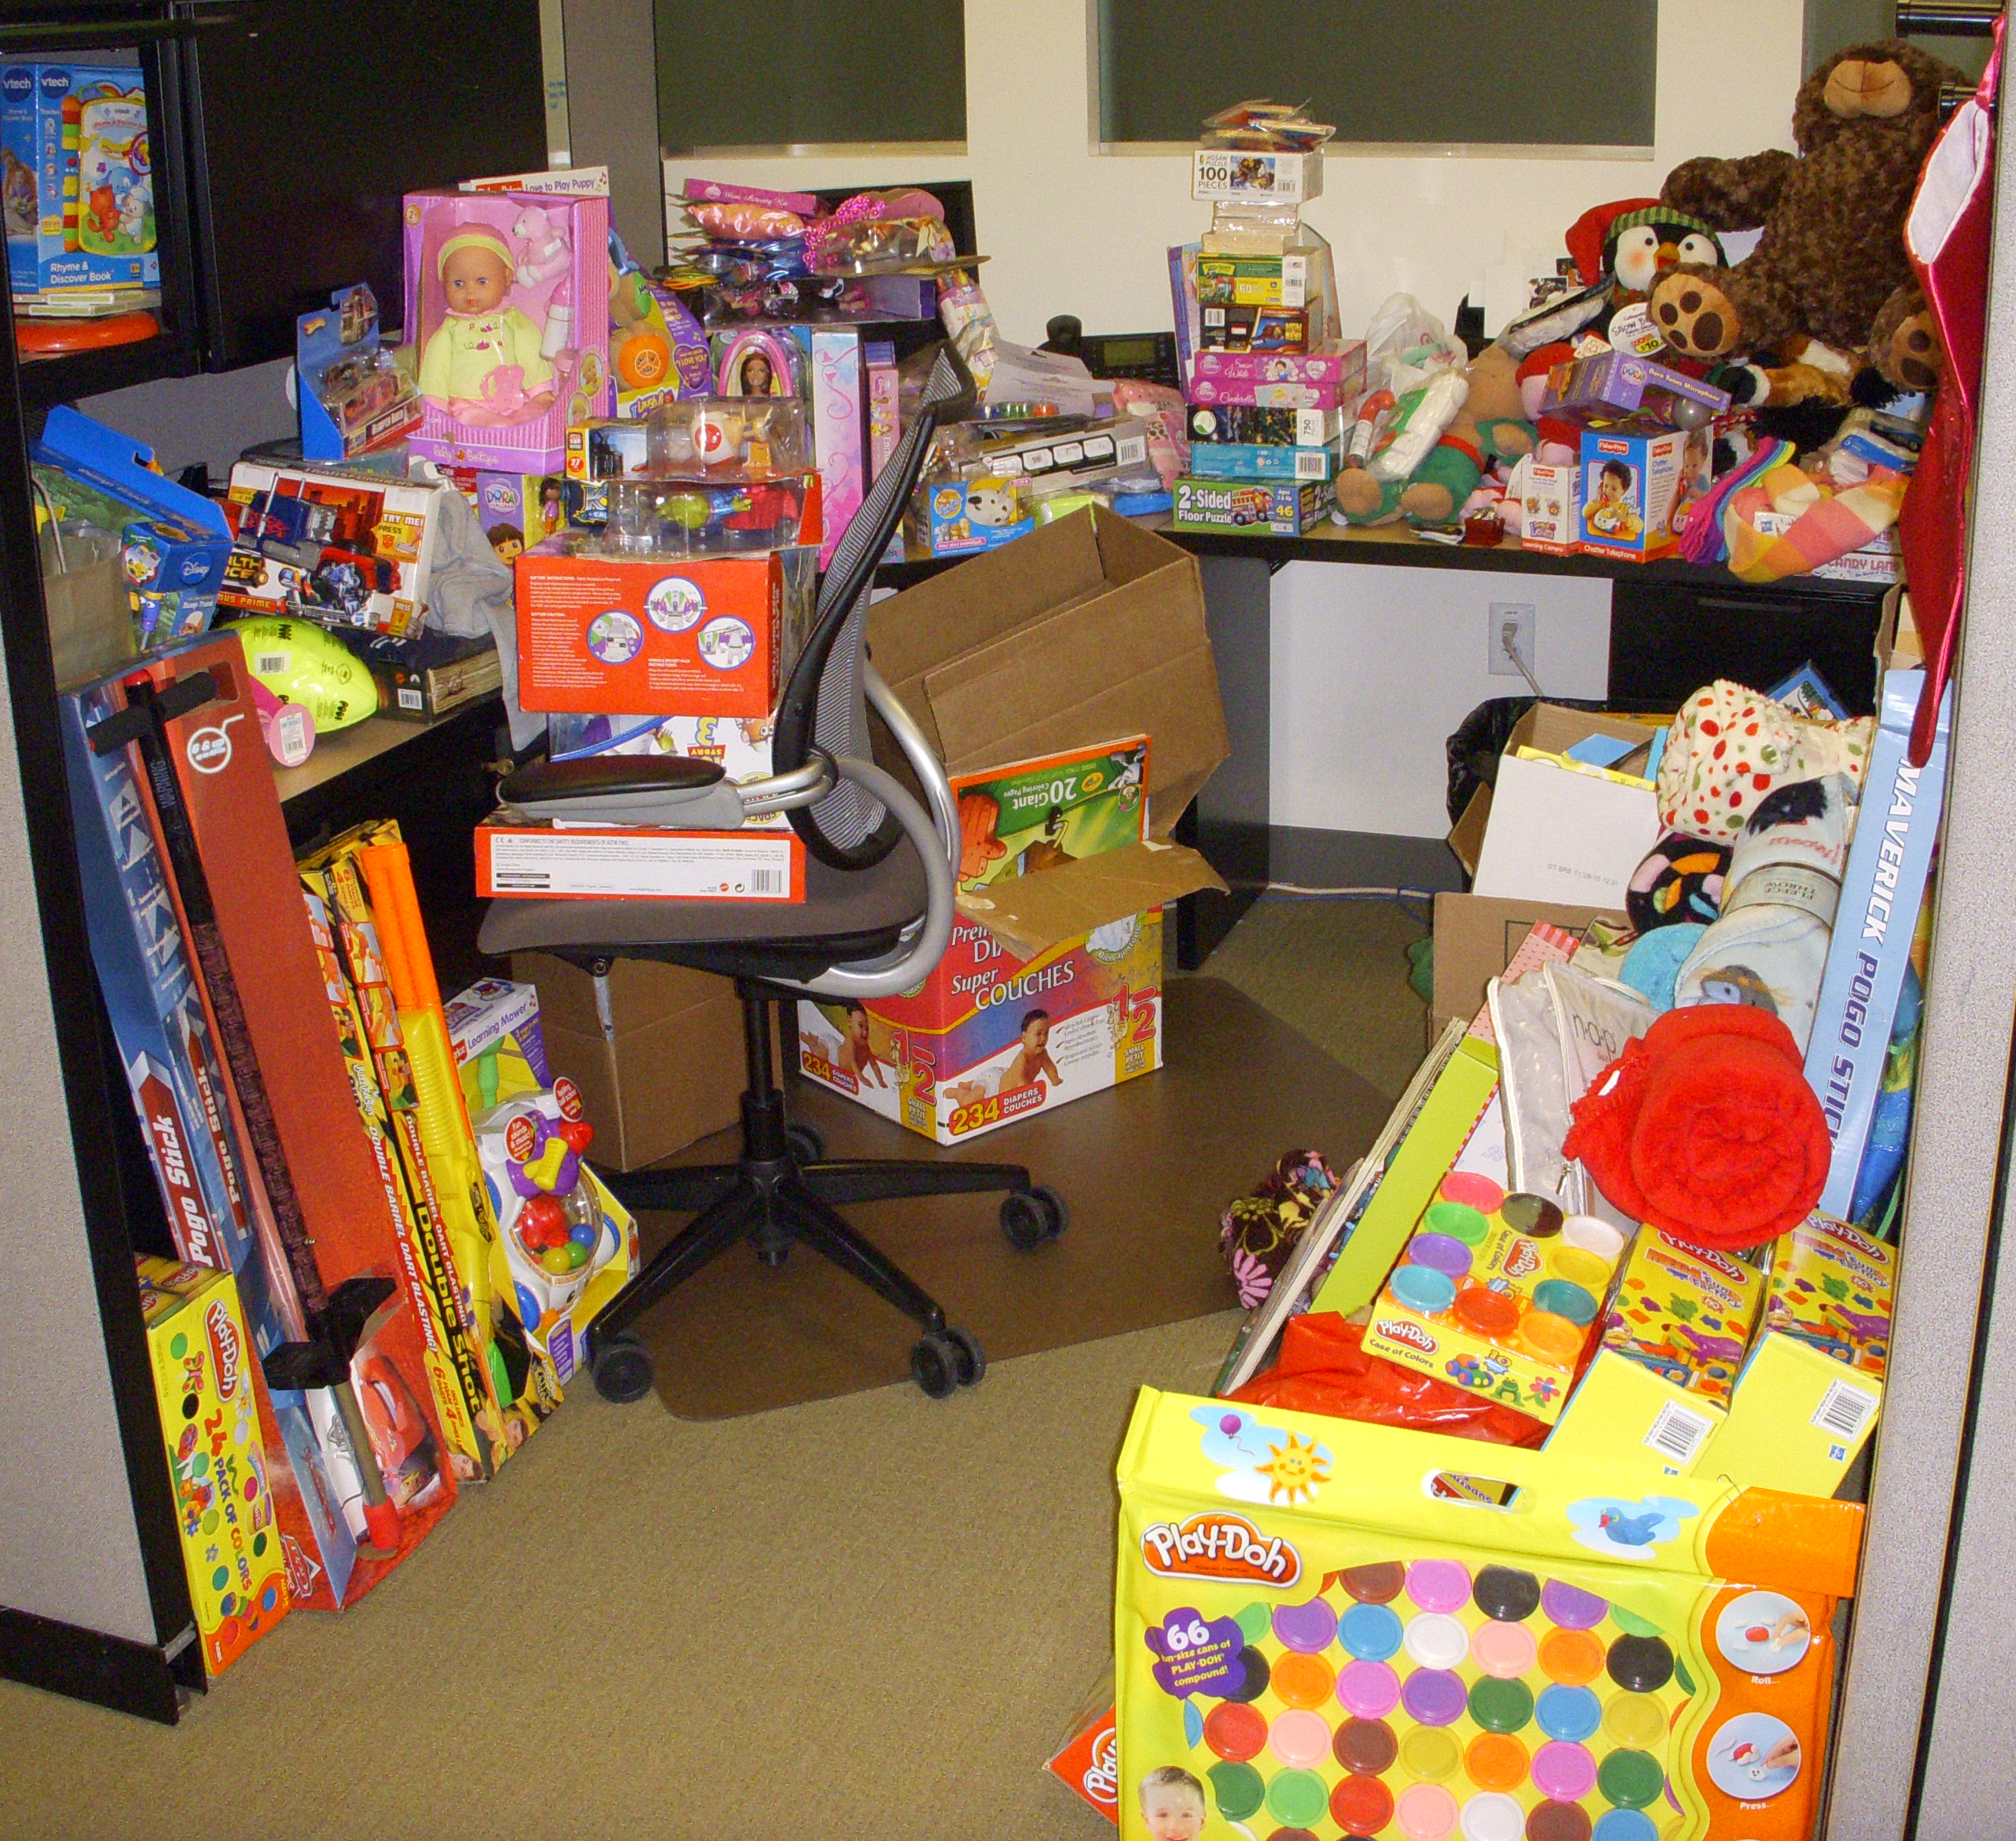 Donating Christmas Gifts: Thank You For Donating Gifts To Kempe This Holiday Season